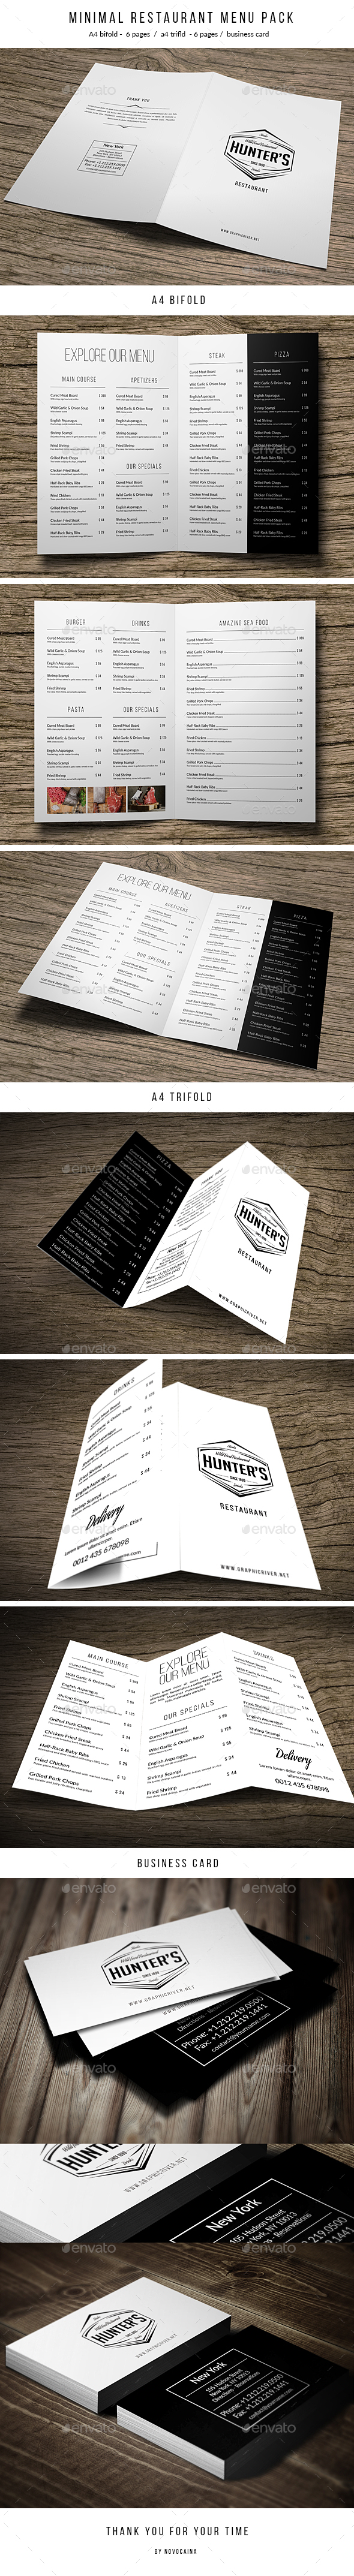 Minimal Food Menu Pack